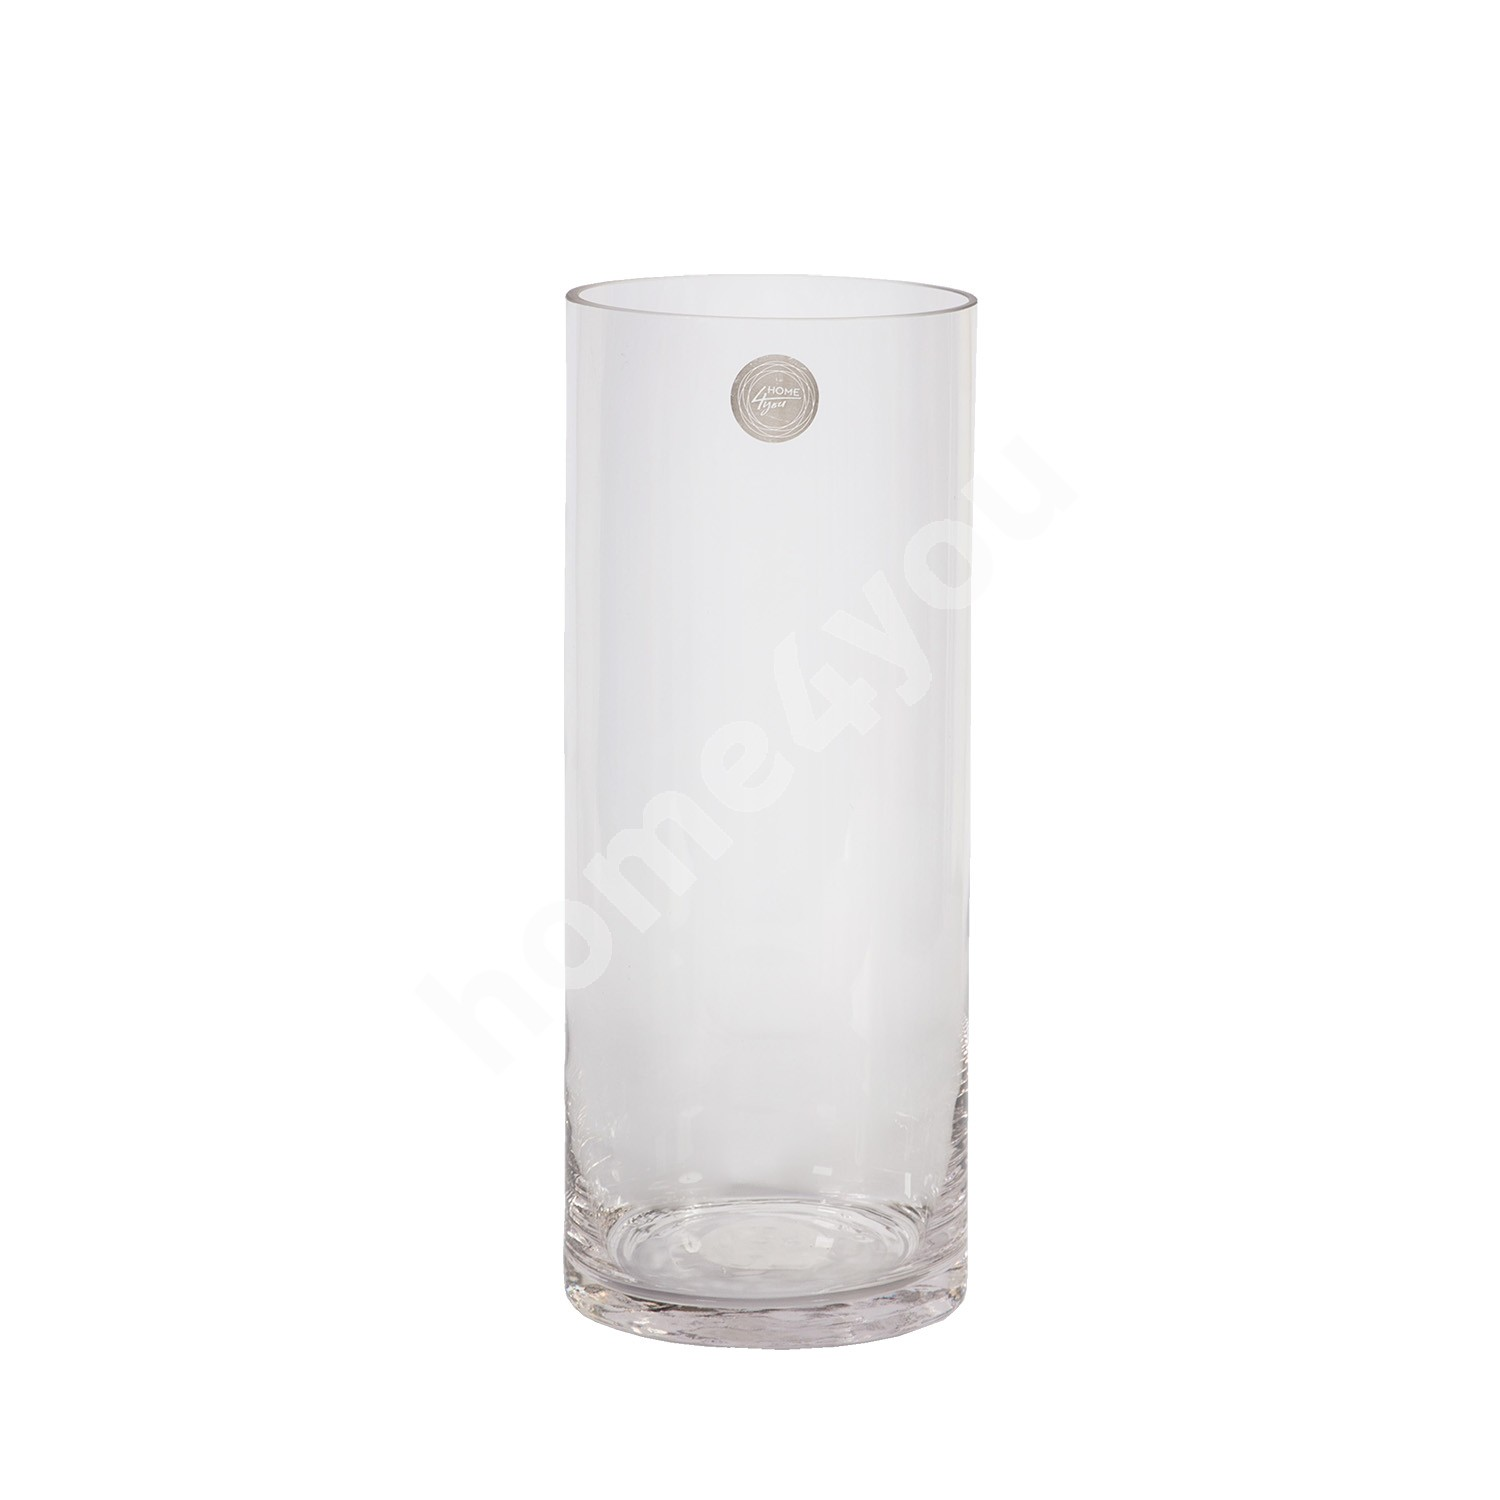 Vase IN HOME D12xH30cm, clear glass